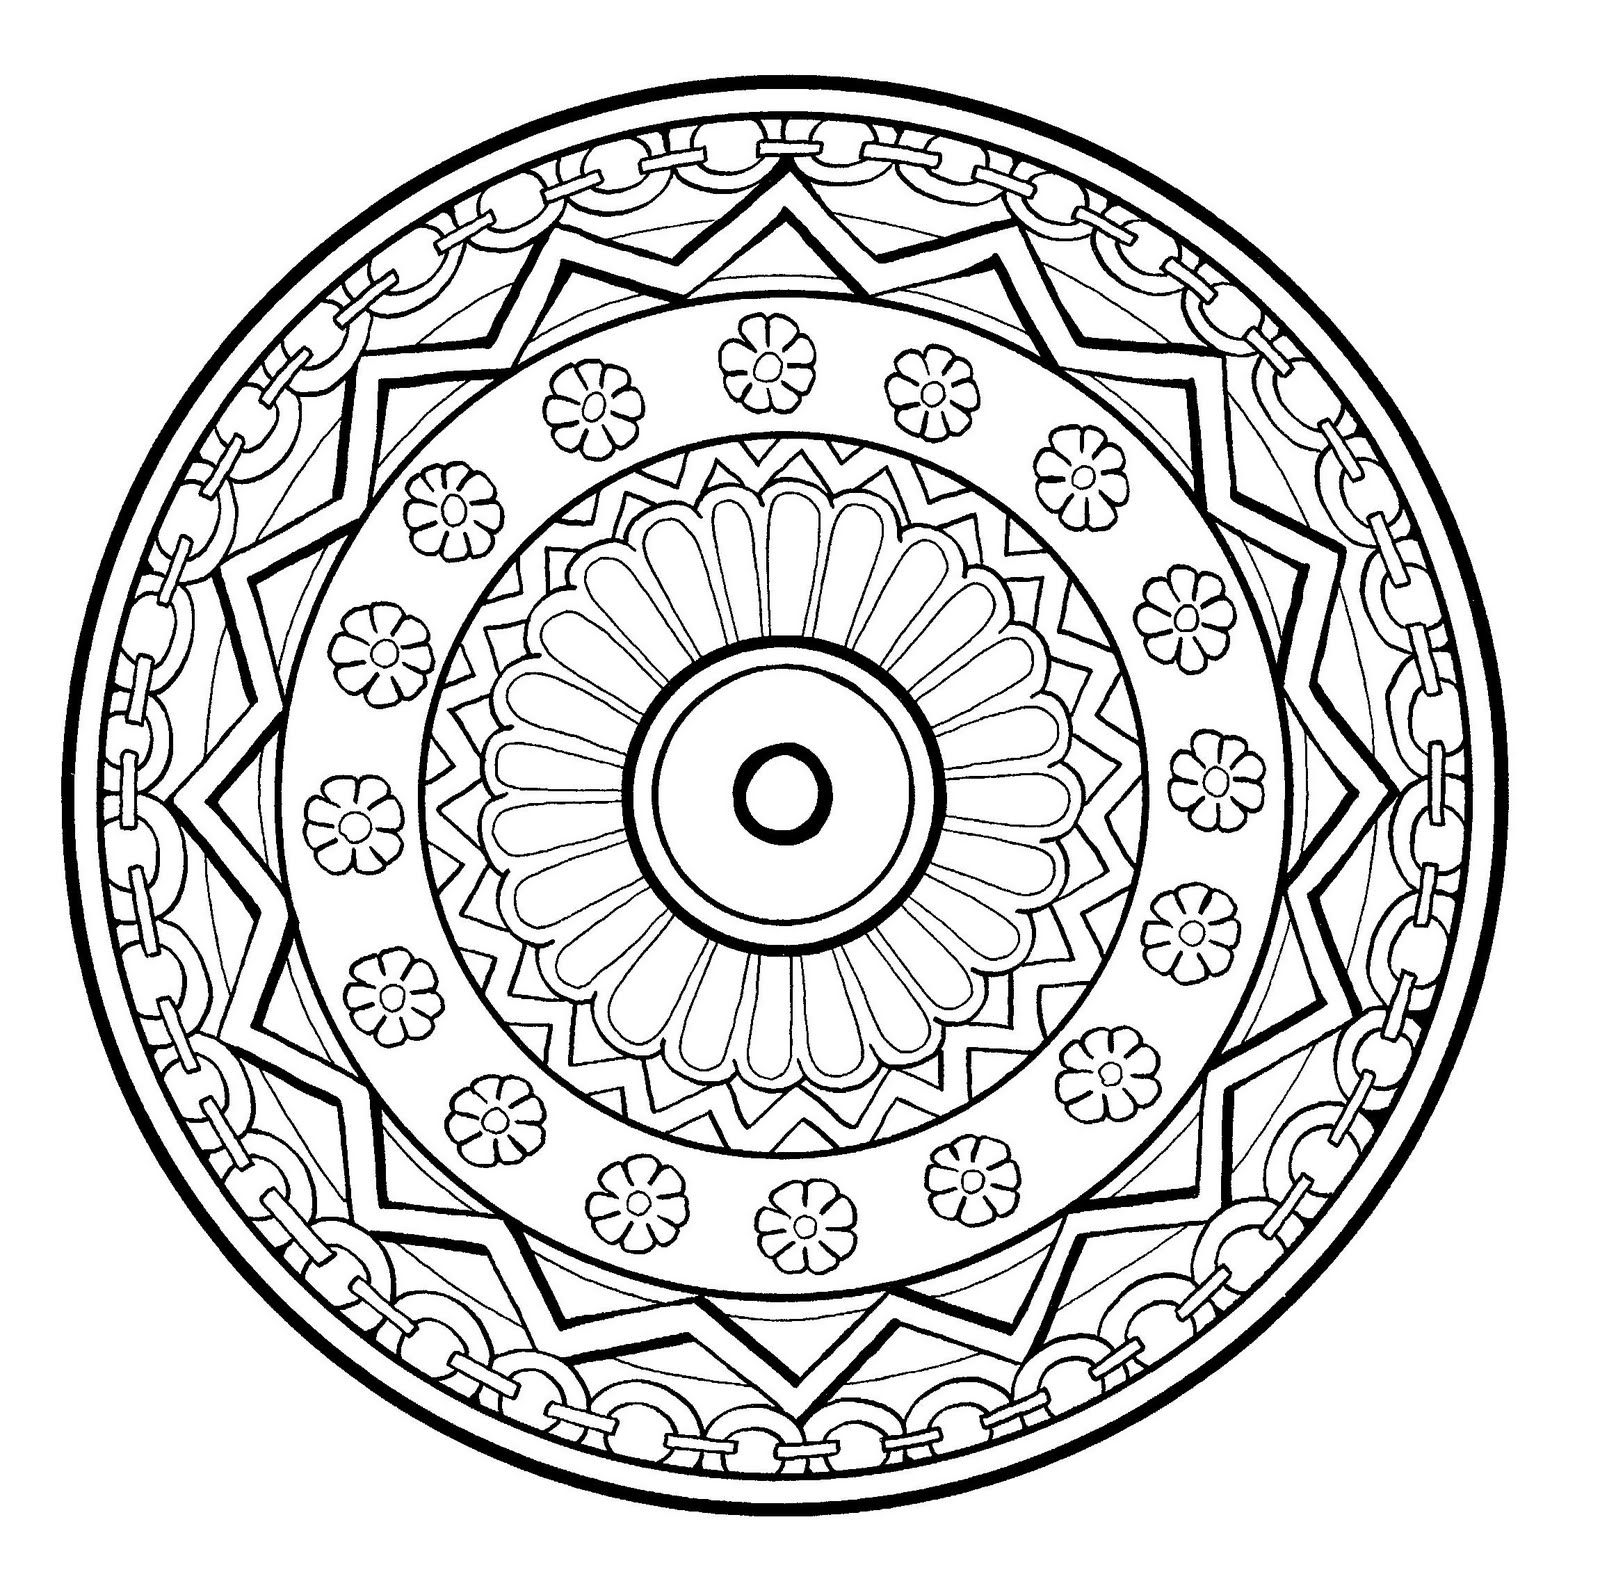 Coloring pages you can color on the computer for adults - These Printable Mandala And Abstract Coloring Pages Relieve Stress And Help You Meditate